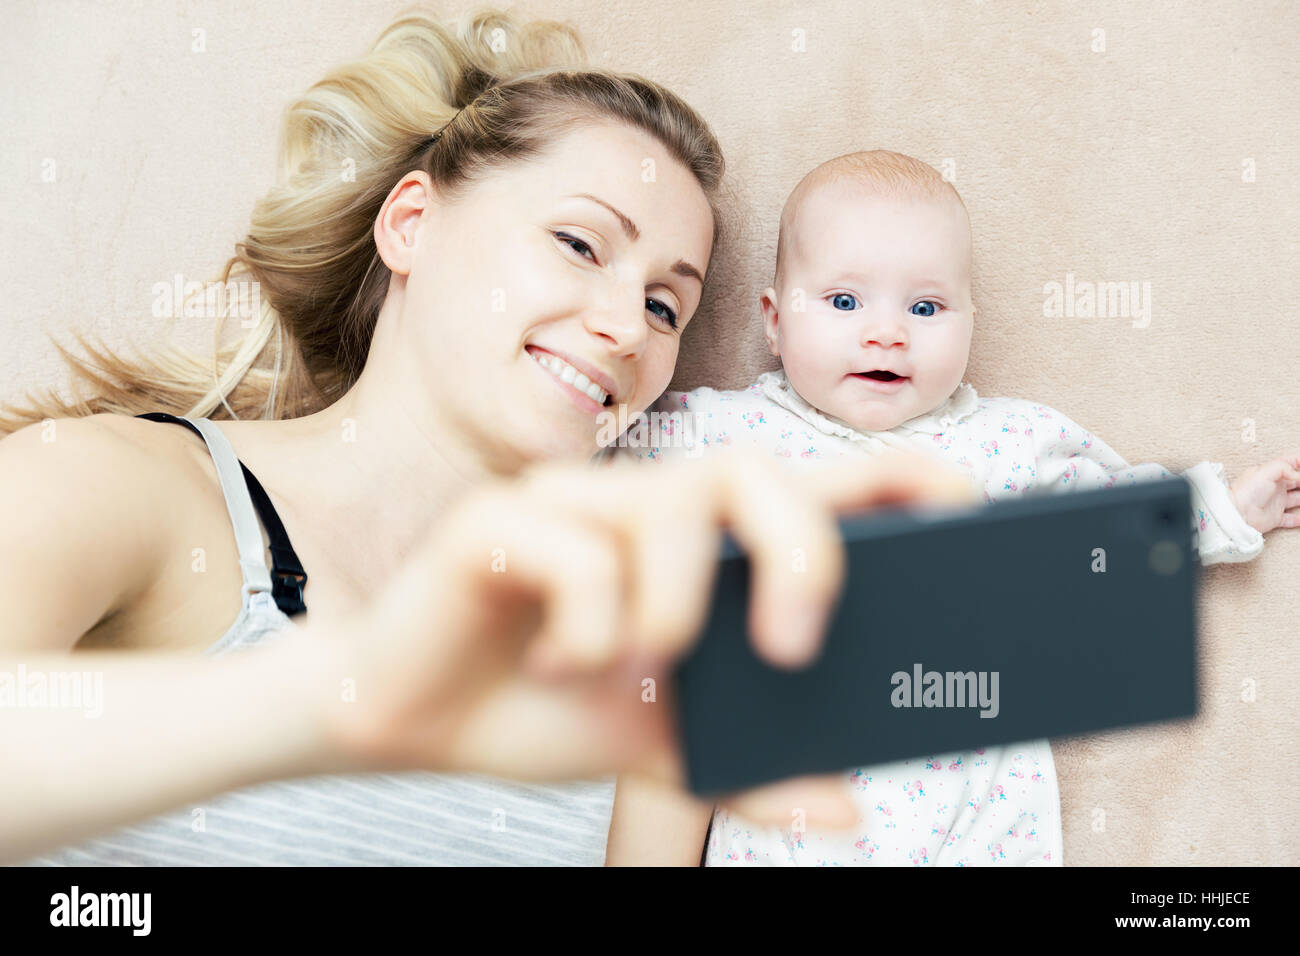 mother and little infant baby taking selfie with phone in bed - Stock Image